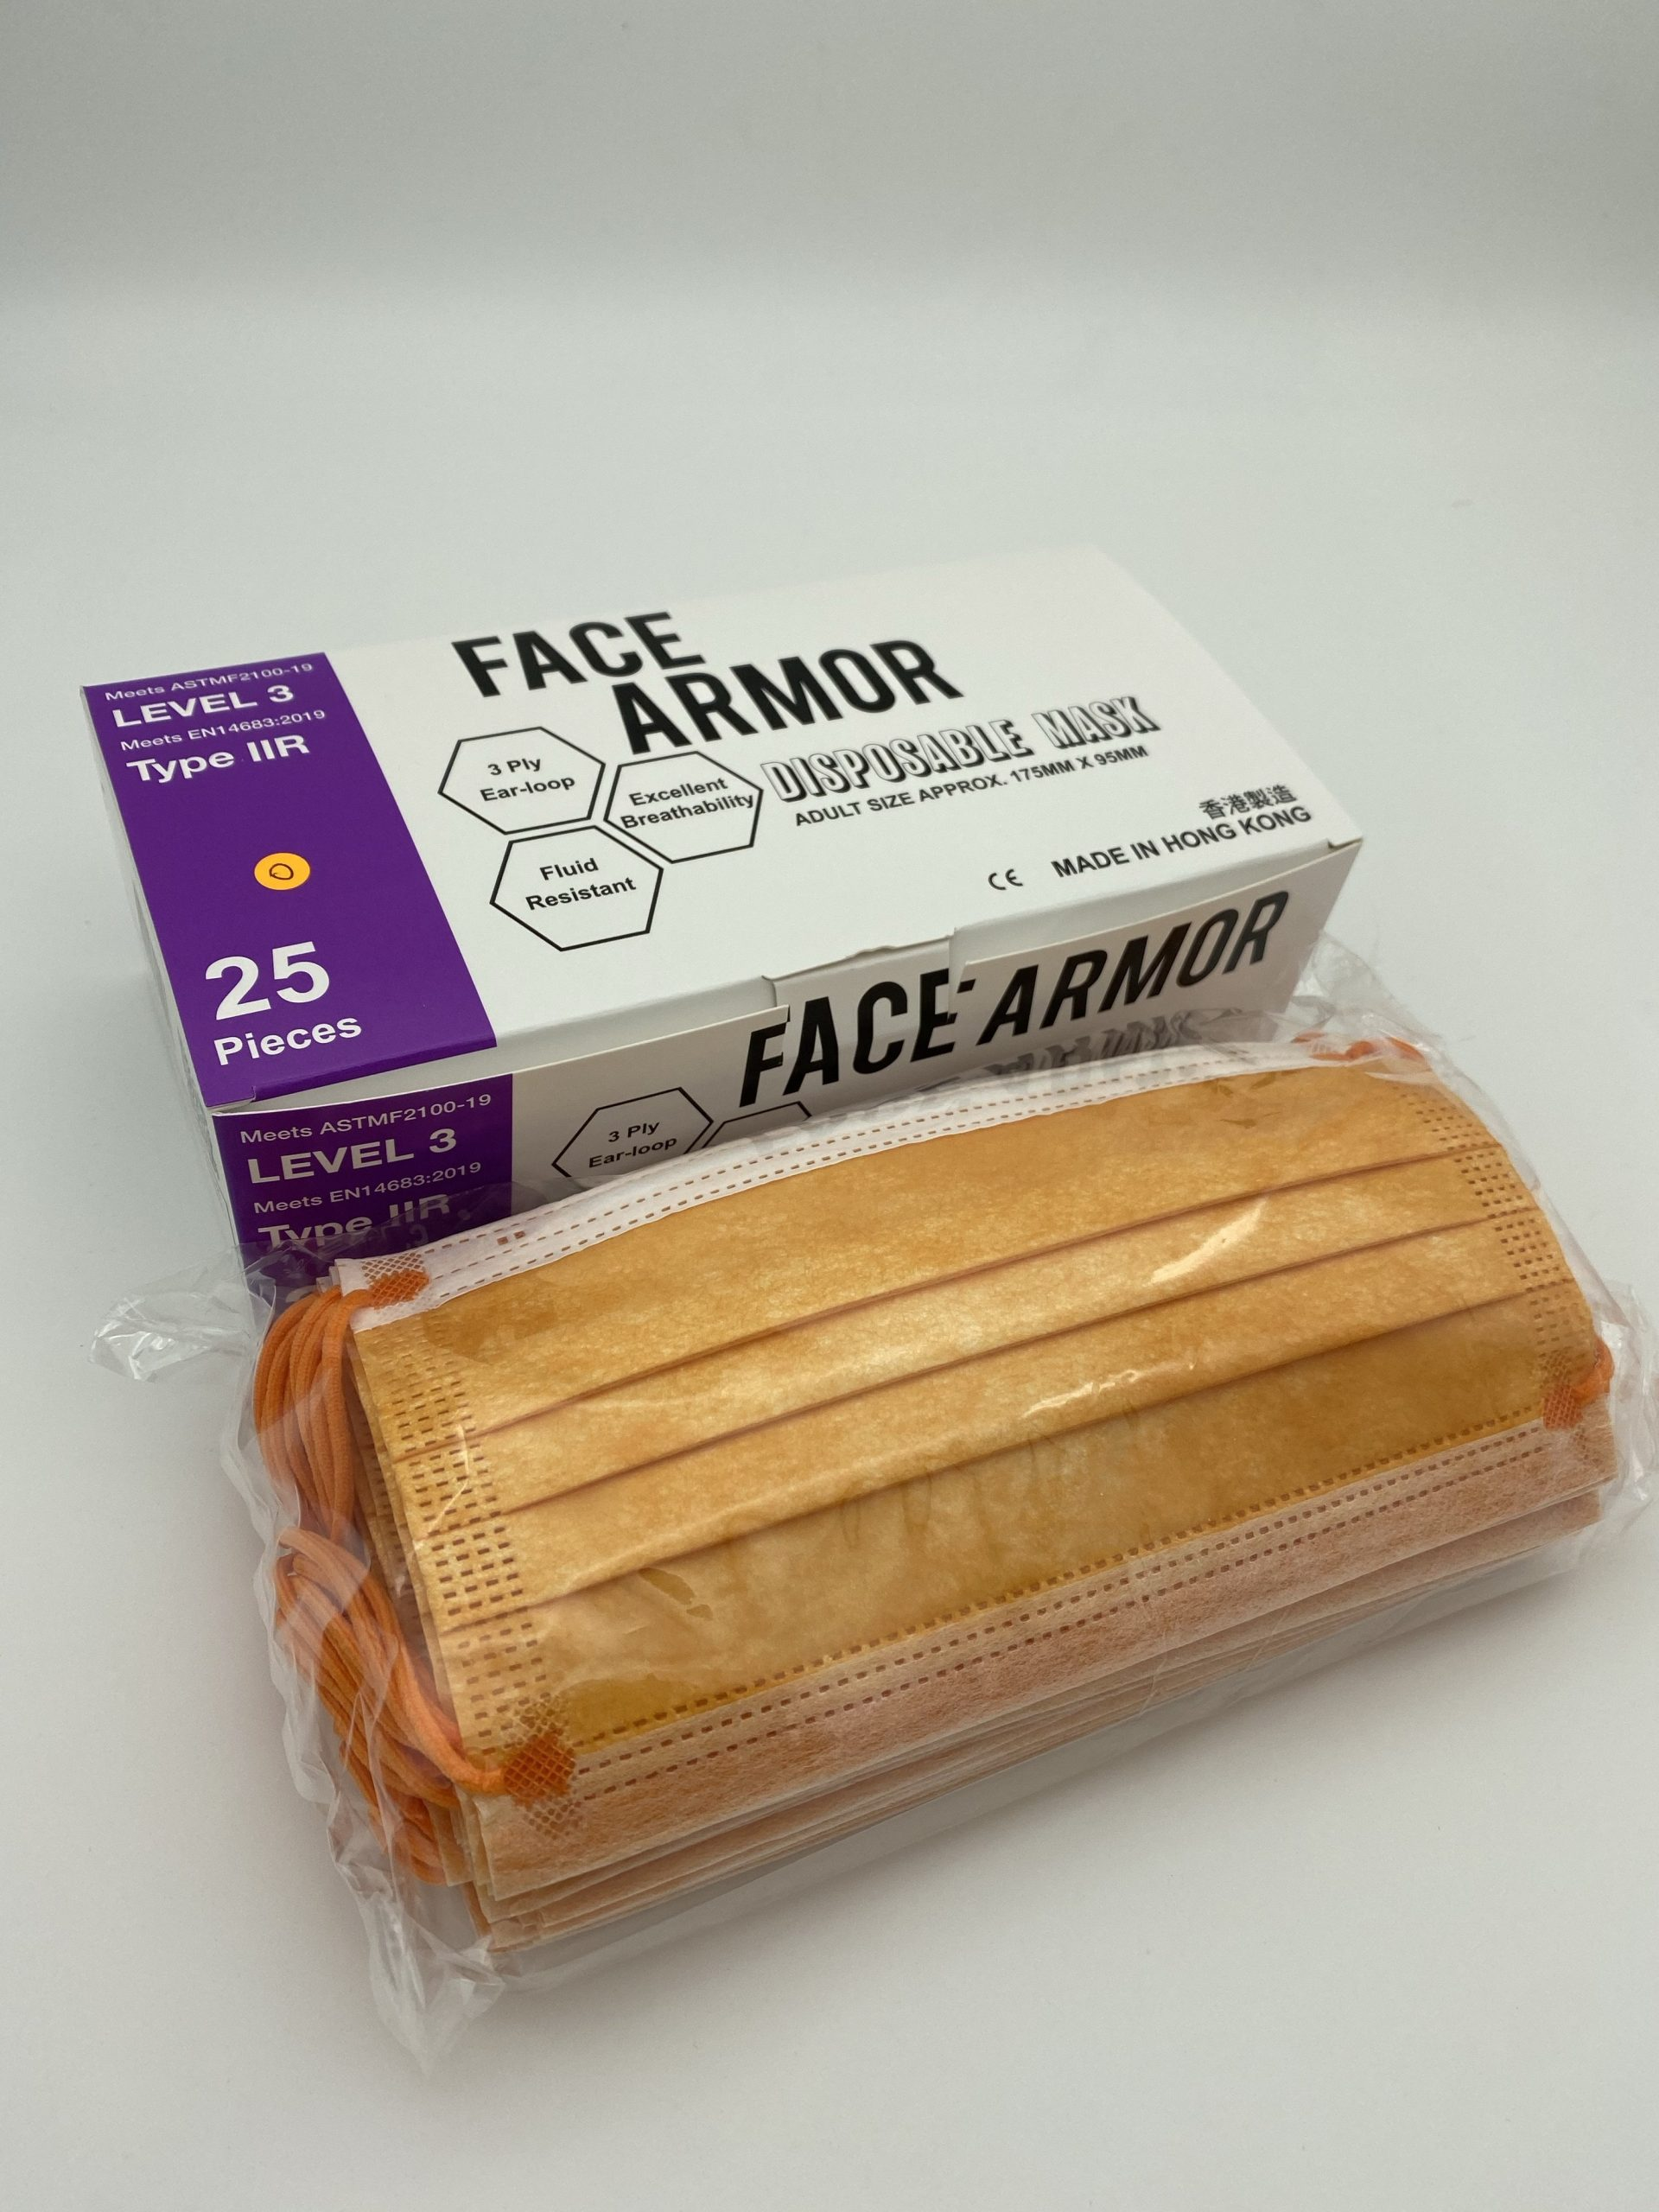 Face Armor Disposable Masks | ASTM LEVEL 3 | Made in Hong Kong| 25 PIECES | ORANGE W/ ORANGE EARLOOP